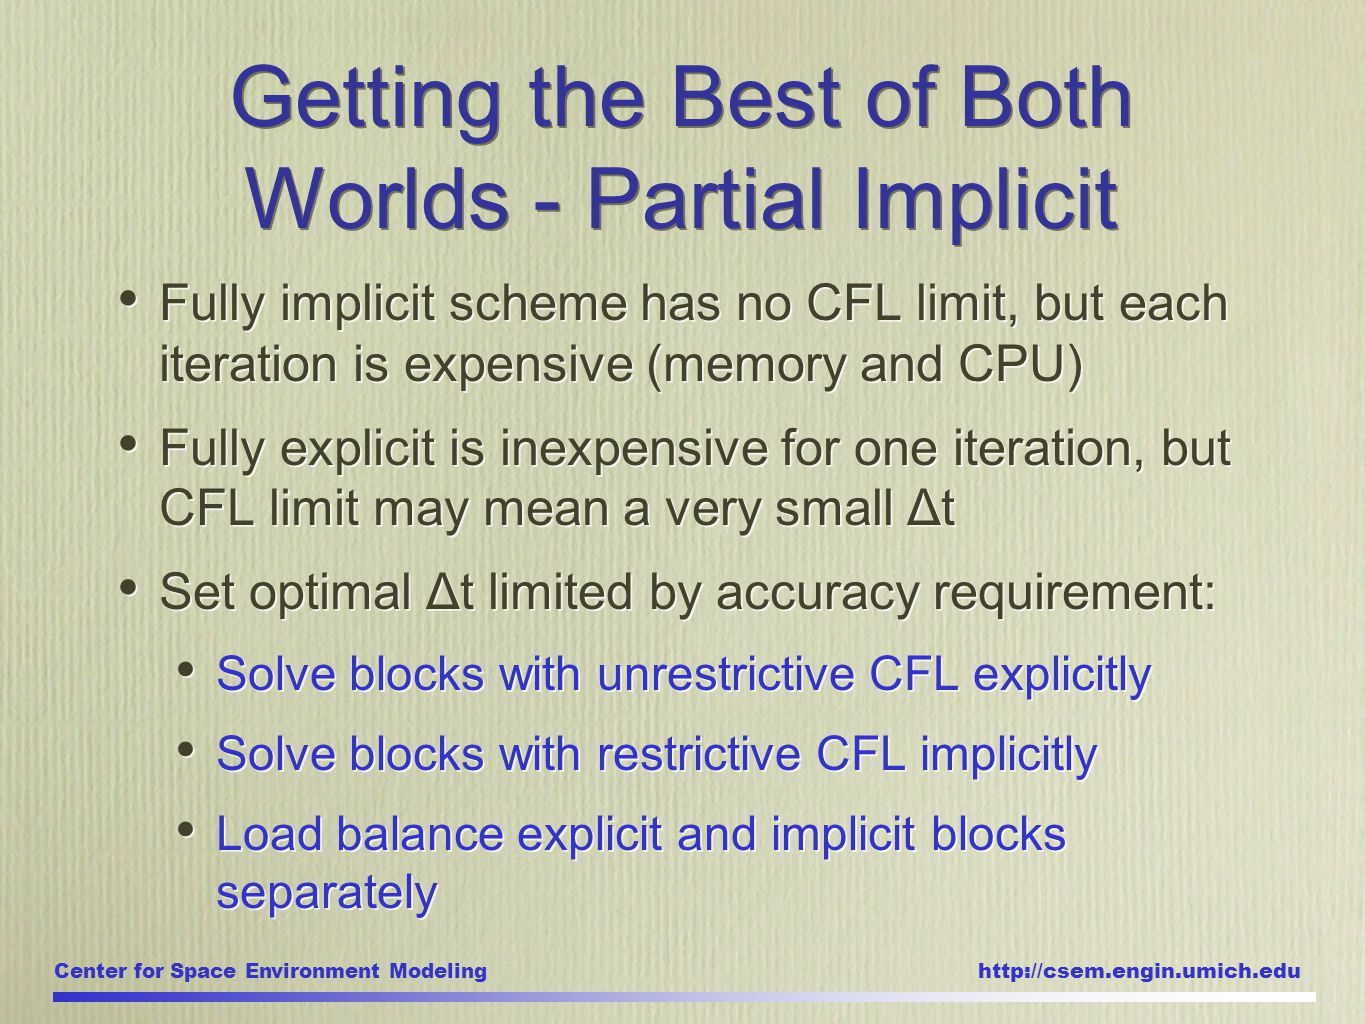 Center for Space Environment Modeling http://csem.engin.umich.edu Fully implicit scheme has no CFL limit, but each iteration is expensive (memory and CPU) Fully explicit is inexpensive for one iteration, but CFL limit may mean a very small Δt Set optimal Δt limited by accuracy requirement: Solve blocks with unrestrictive CFL explicitly Solve blocks with restrictive CFL implicitly Load balance explicit and implicit blocks separately Fully implicit scheme has no CFL limit, but each iteration is expensive (memory and CPU) Fully explicit is inexpensive for one iteration, but CFL limit may mean a very small Δt Set optimal Δt limited by accuracy requirement: Solve blocks with unrestrictive CFL explicitly Solve blocks with restrictive CFL implicitly Load balance explicit and implicit blocks separately Getting the Best of Both Worlds - Partial Implicit